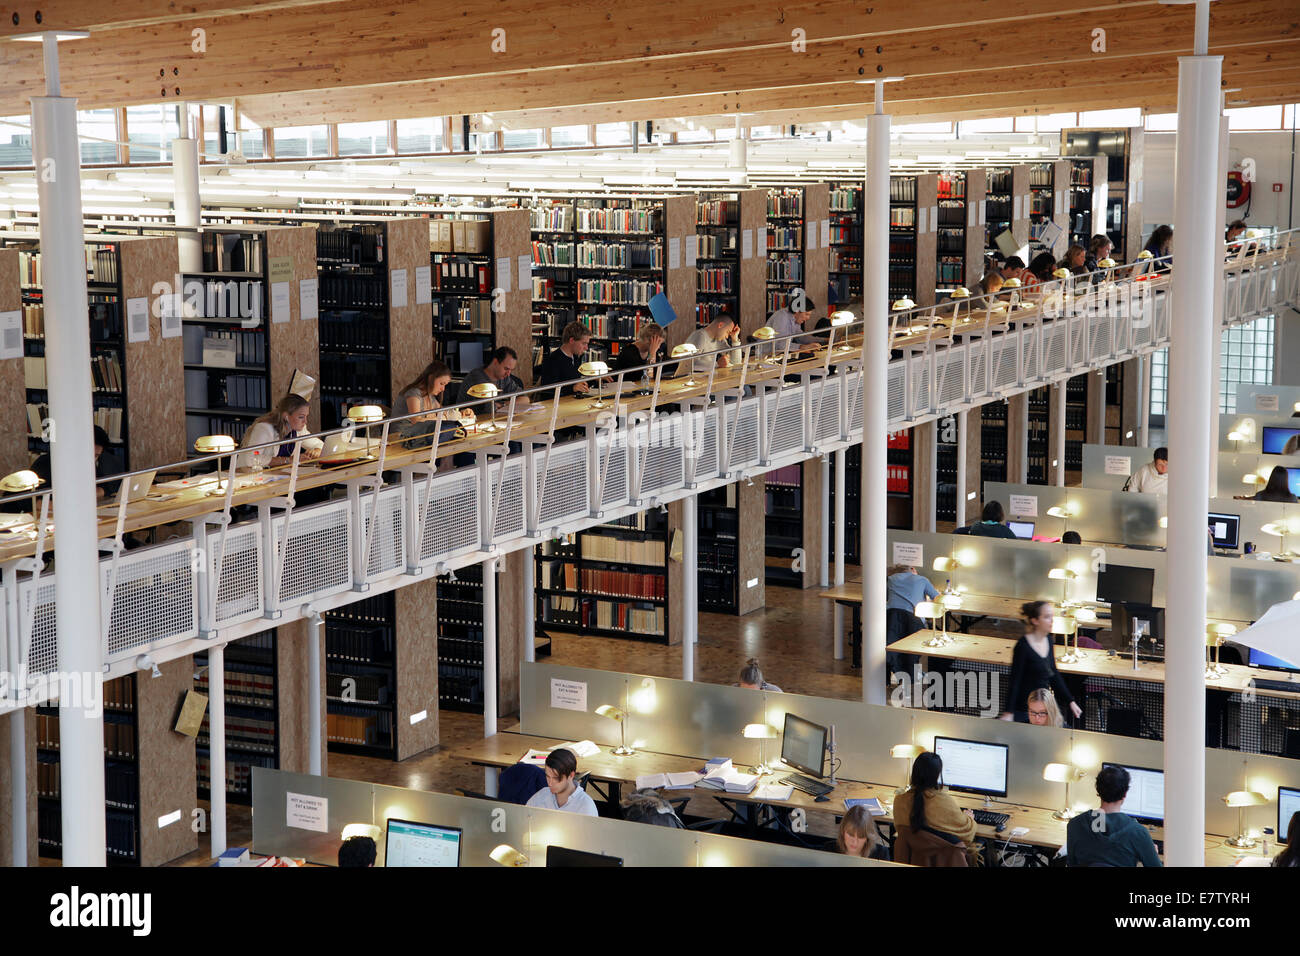 Student.Students reading studying and working in a Library.University Library. - Stock Image